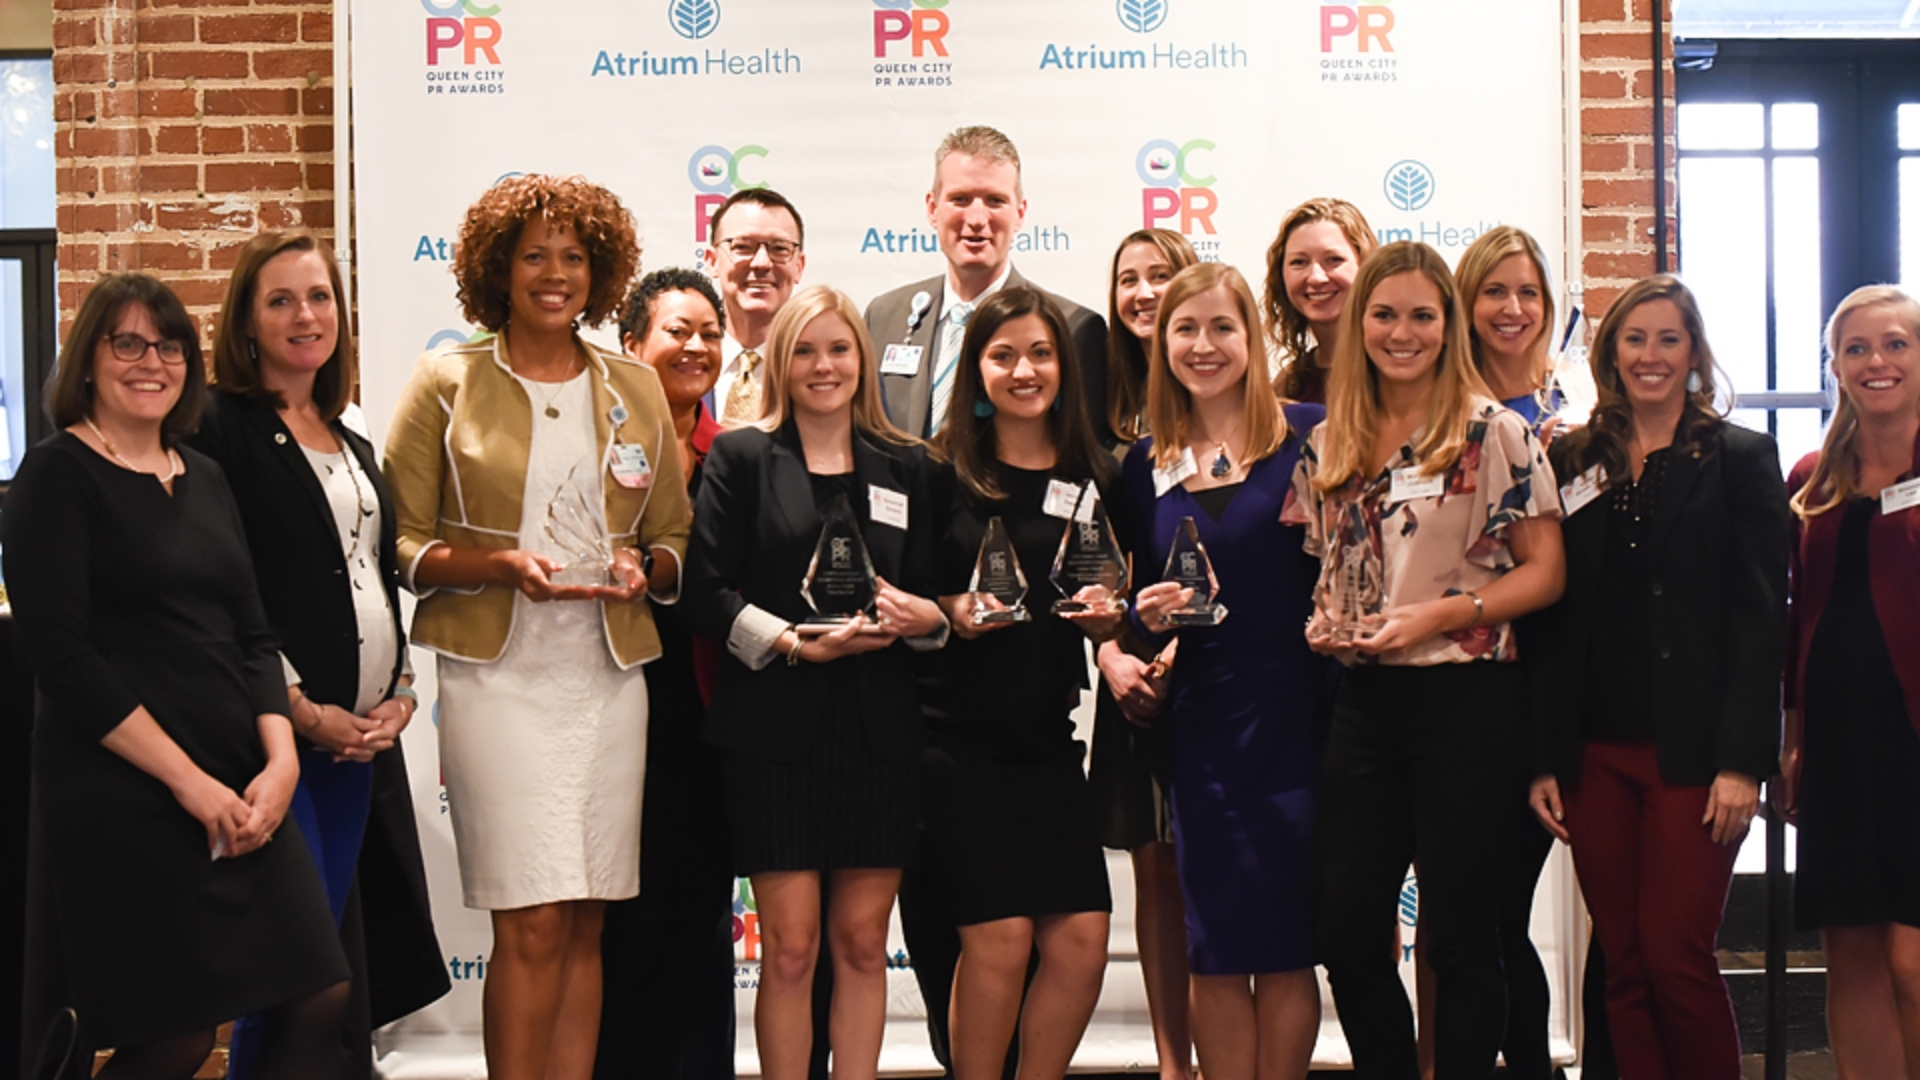 Atrium Health's Corporate Communications team received local and regional recognition from the Public Relations Society of America (PRSA) Charlotte chapter for leading strategic and effective communications campaigns.